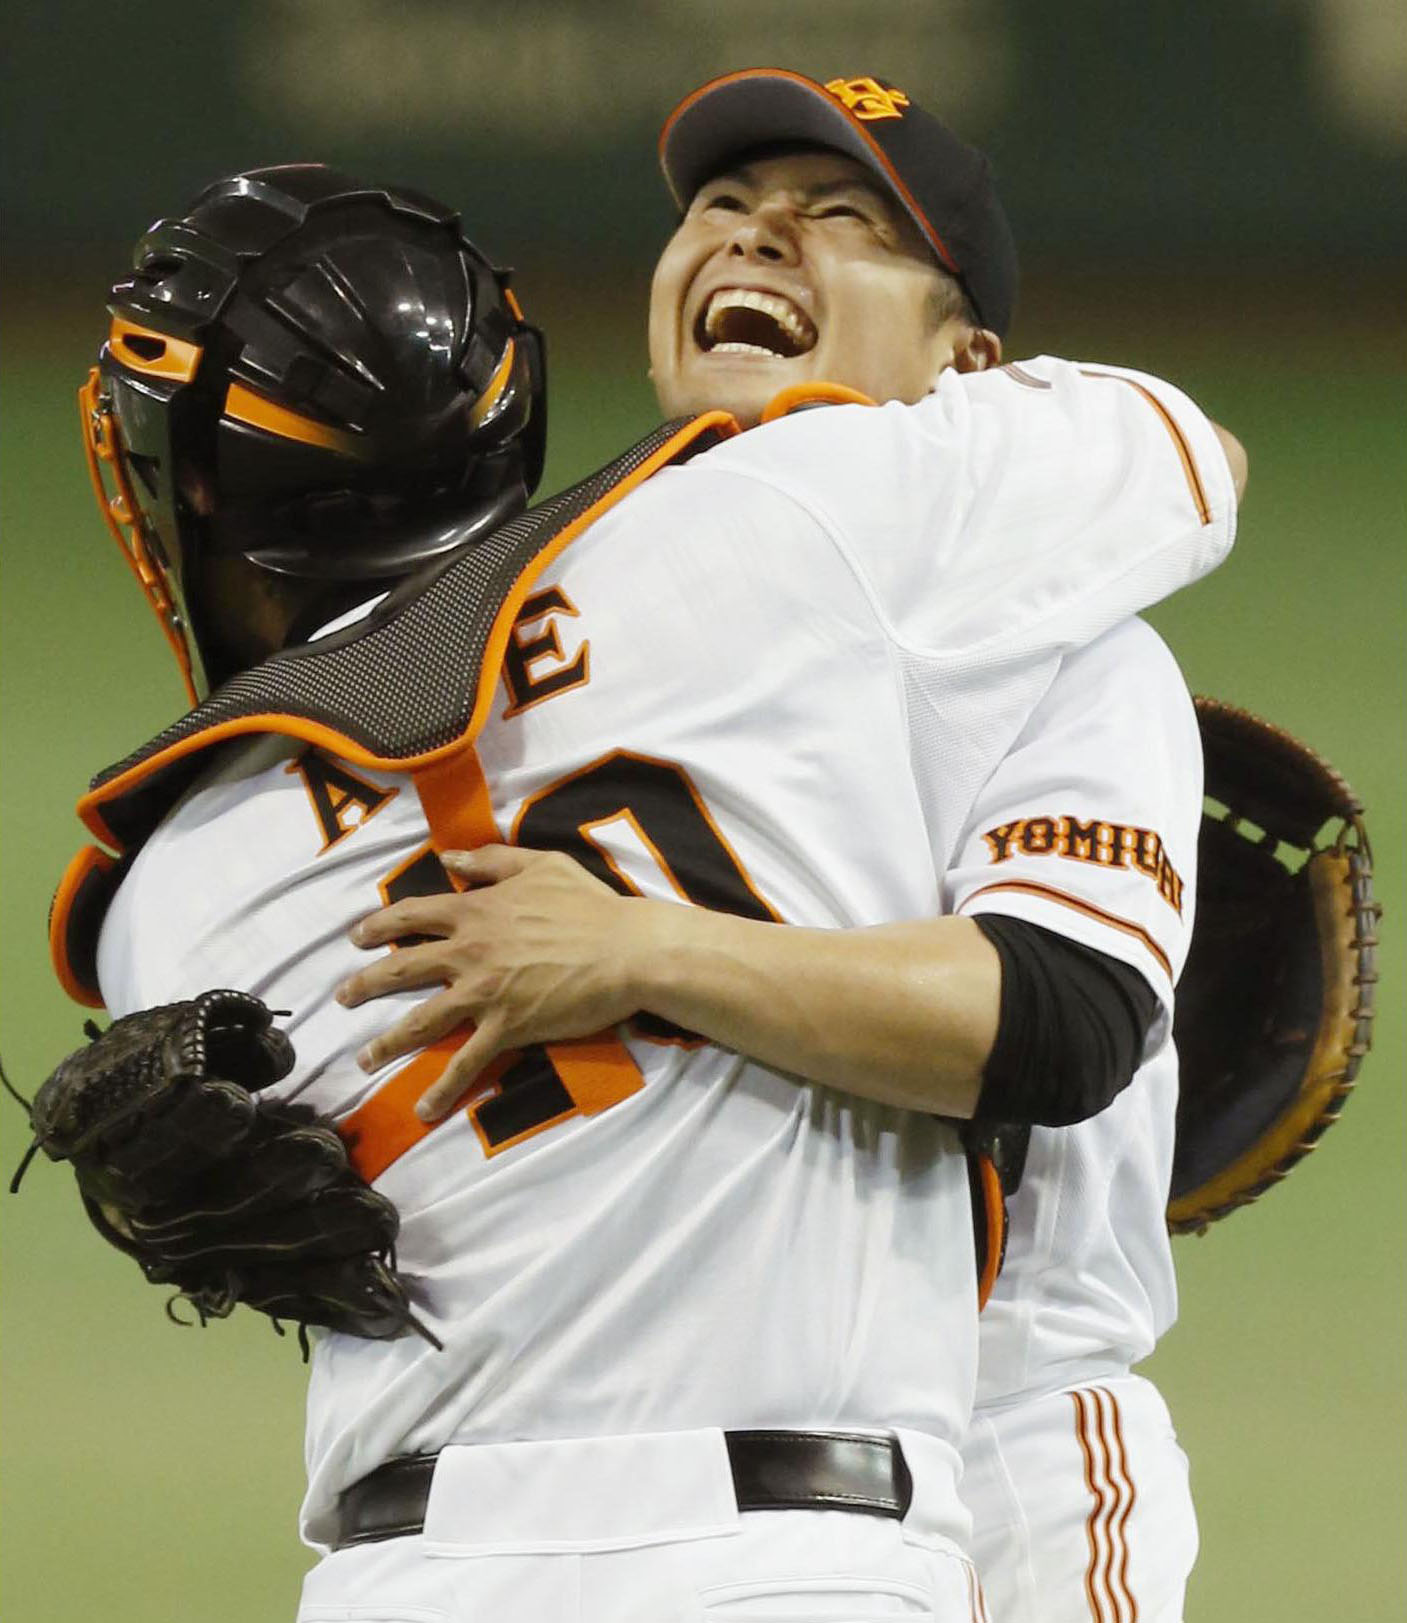 Almost perfect: Giants pitcher Toshiya Sugiuchi celebrates with catcher Shinnosuke Abe after throwing a no-hitter against the Golden Eagles on Wednesday. | KYODO